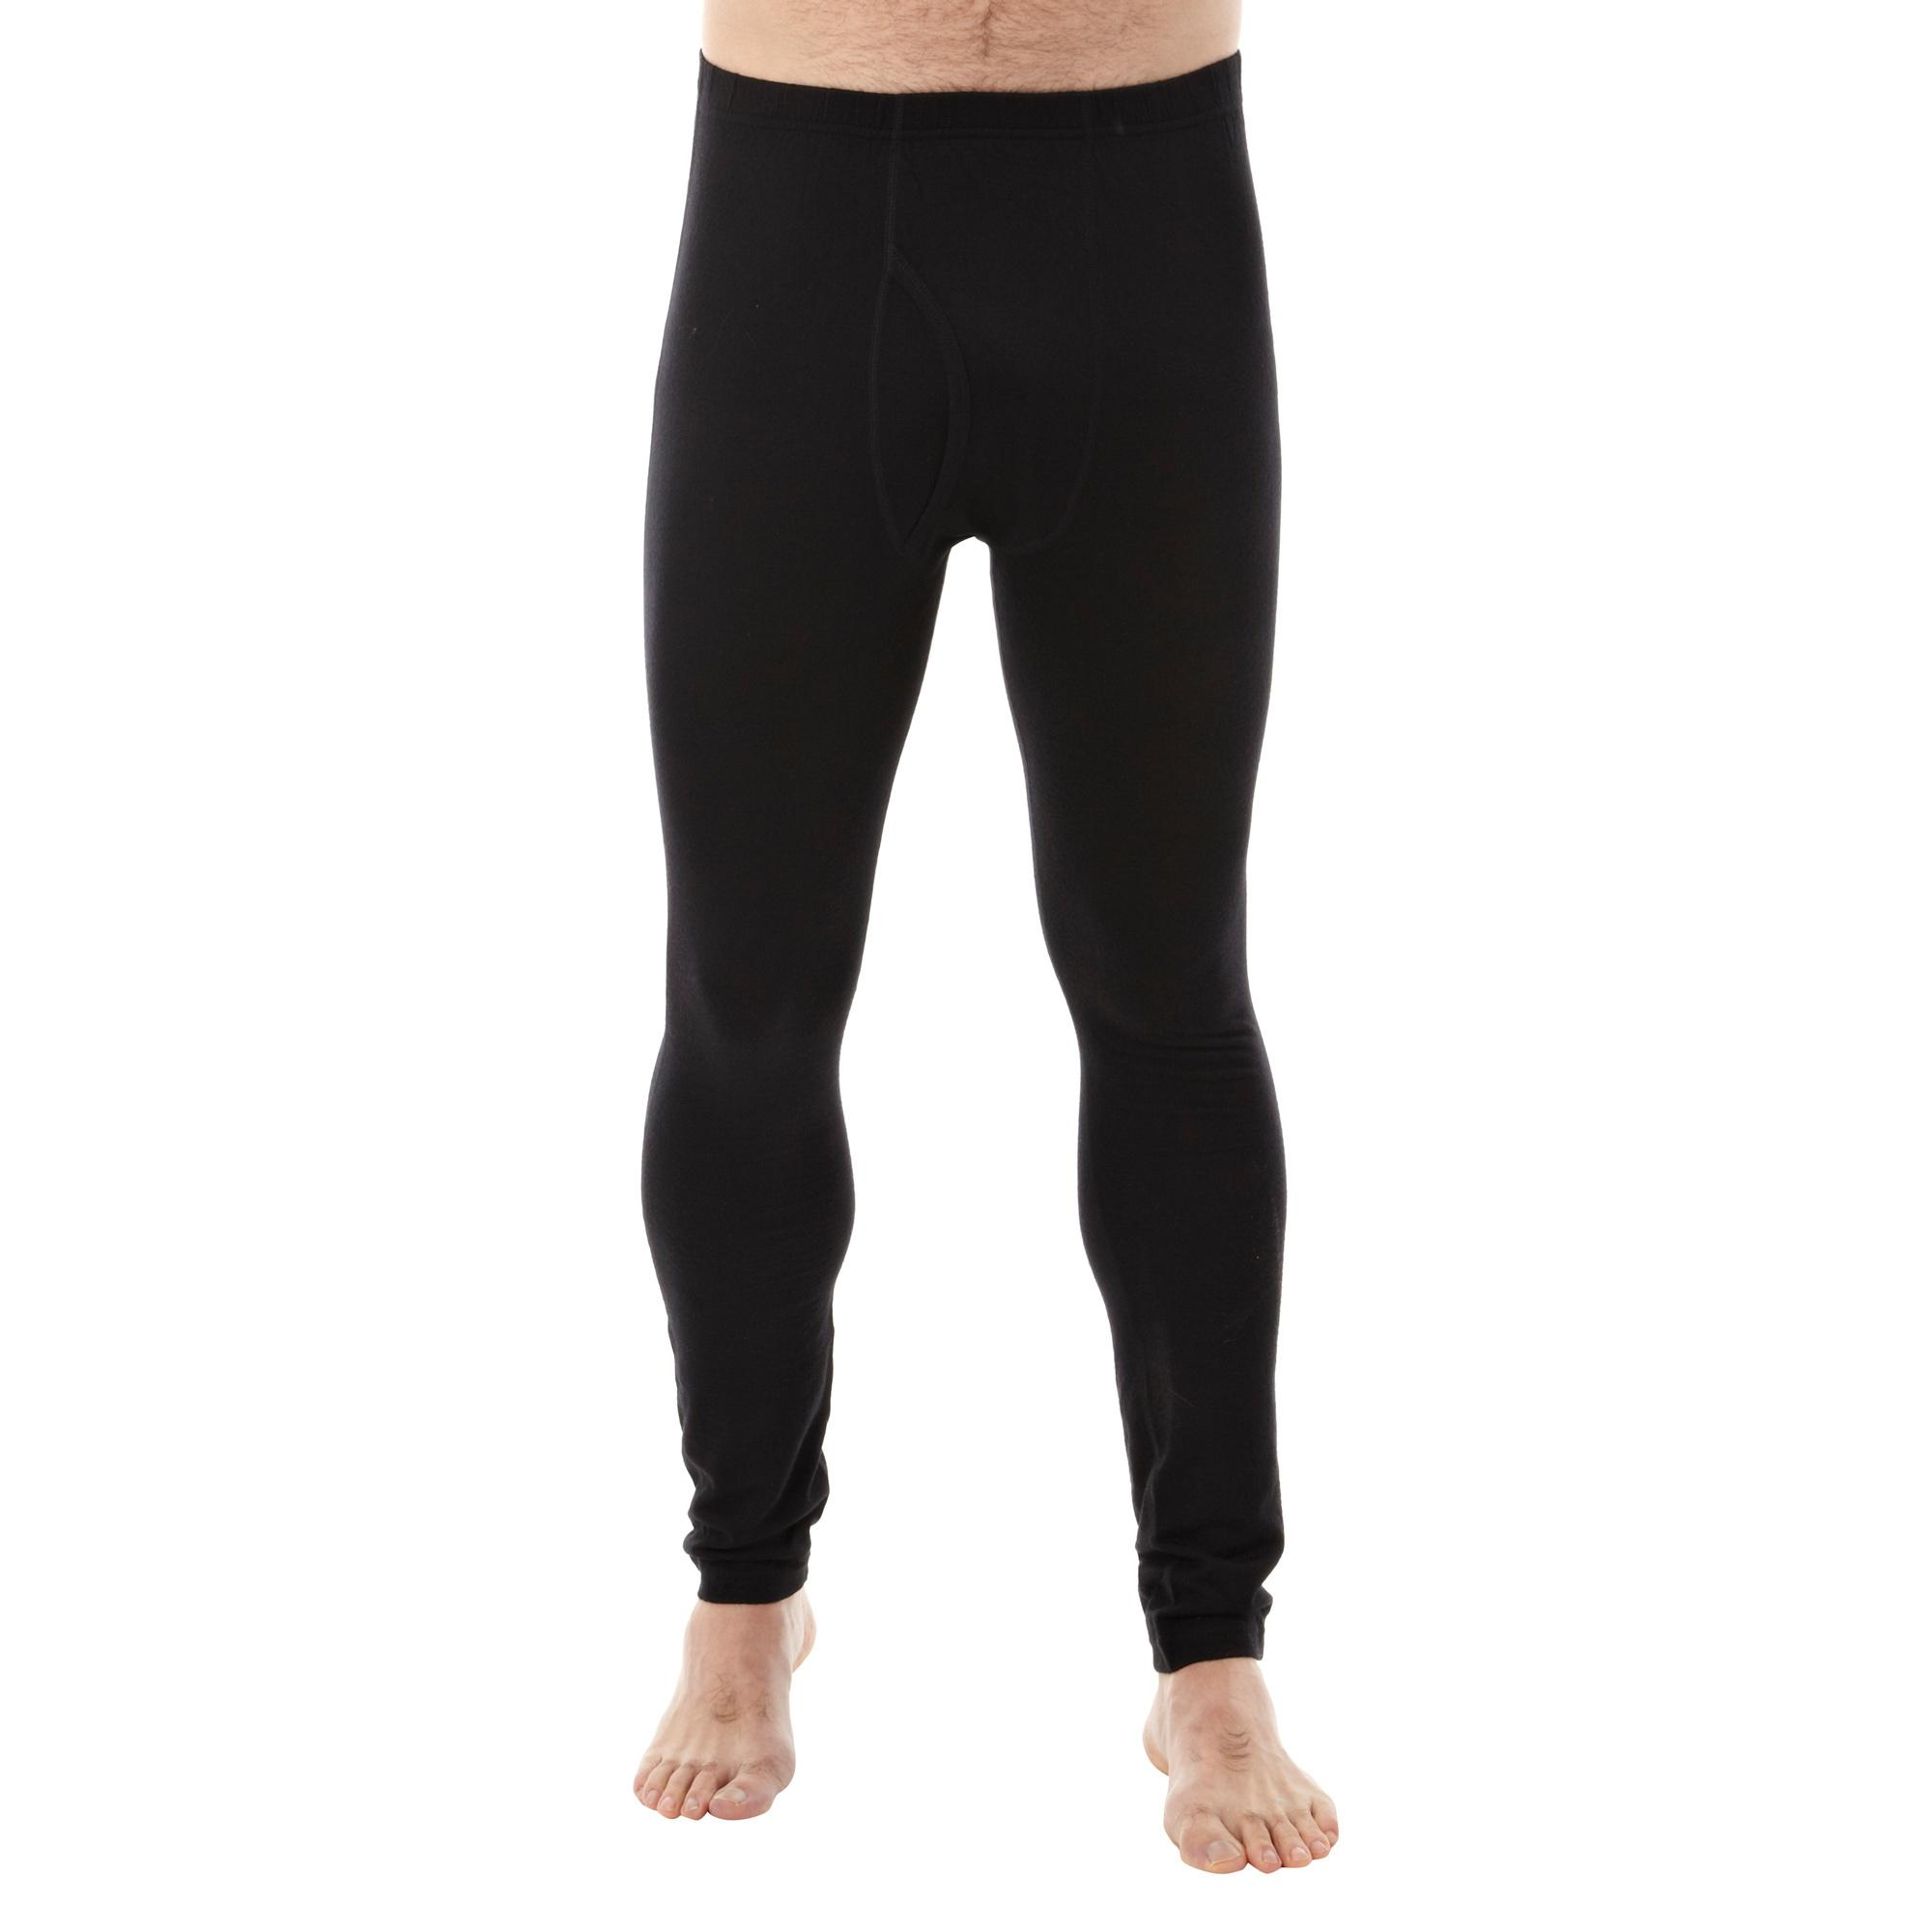 Peter Storm Men's Merino Base Layer Pants, Black